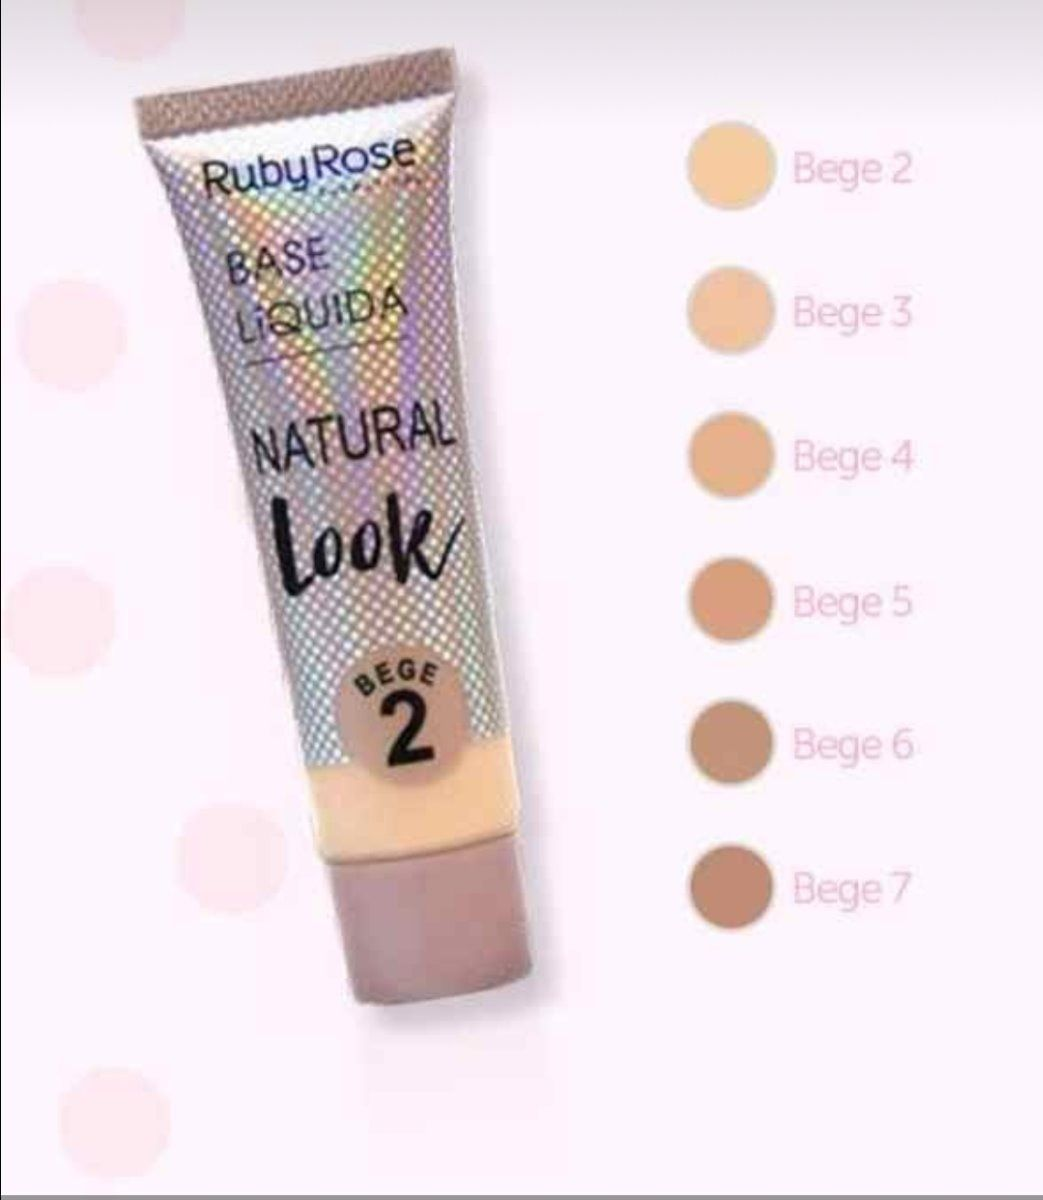 Base Liquida Natural Look Bege Grupo 2 Ruby Rose Kit c/ 06 unidades